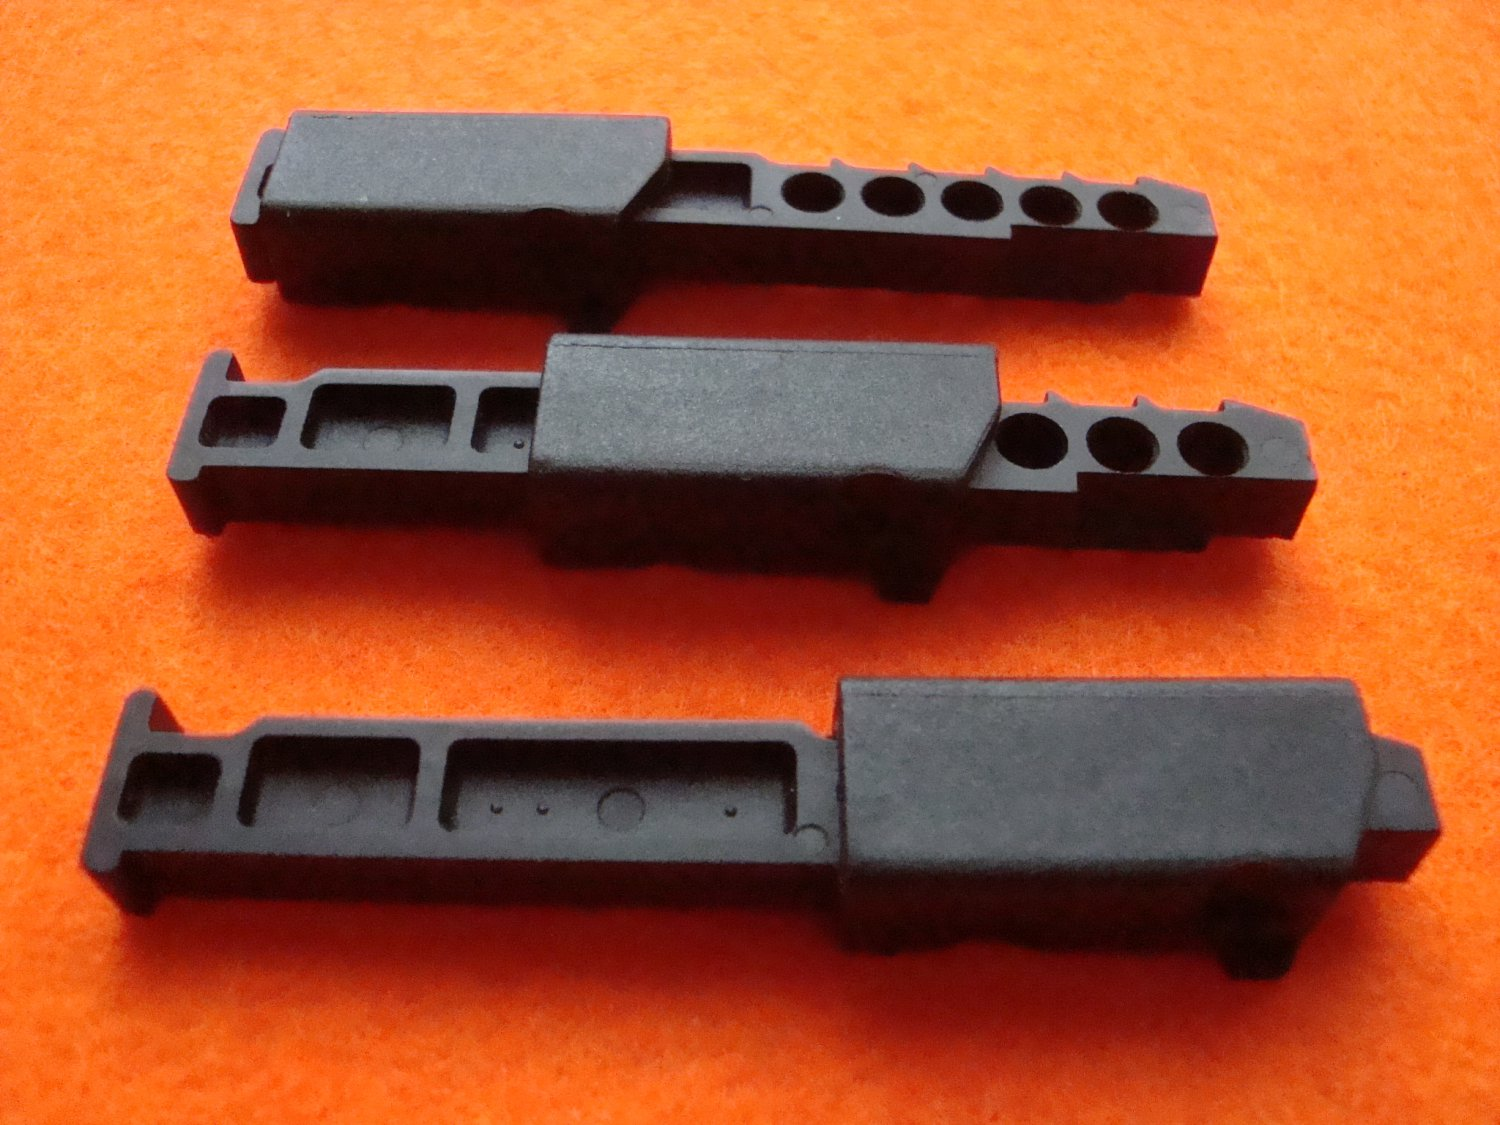 IZH-61, MP-61 tuning kit of three magazine with safety cap for quick comfortable use, made to order.